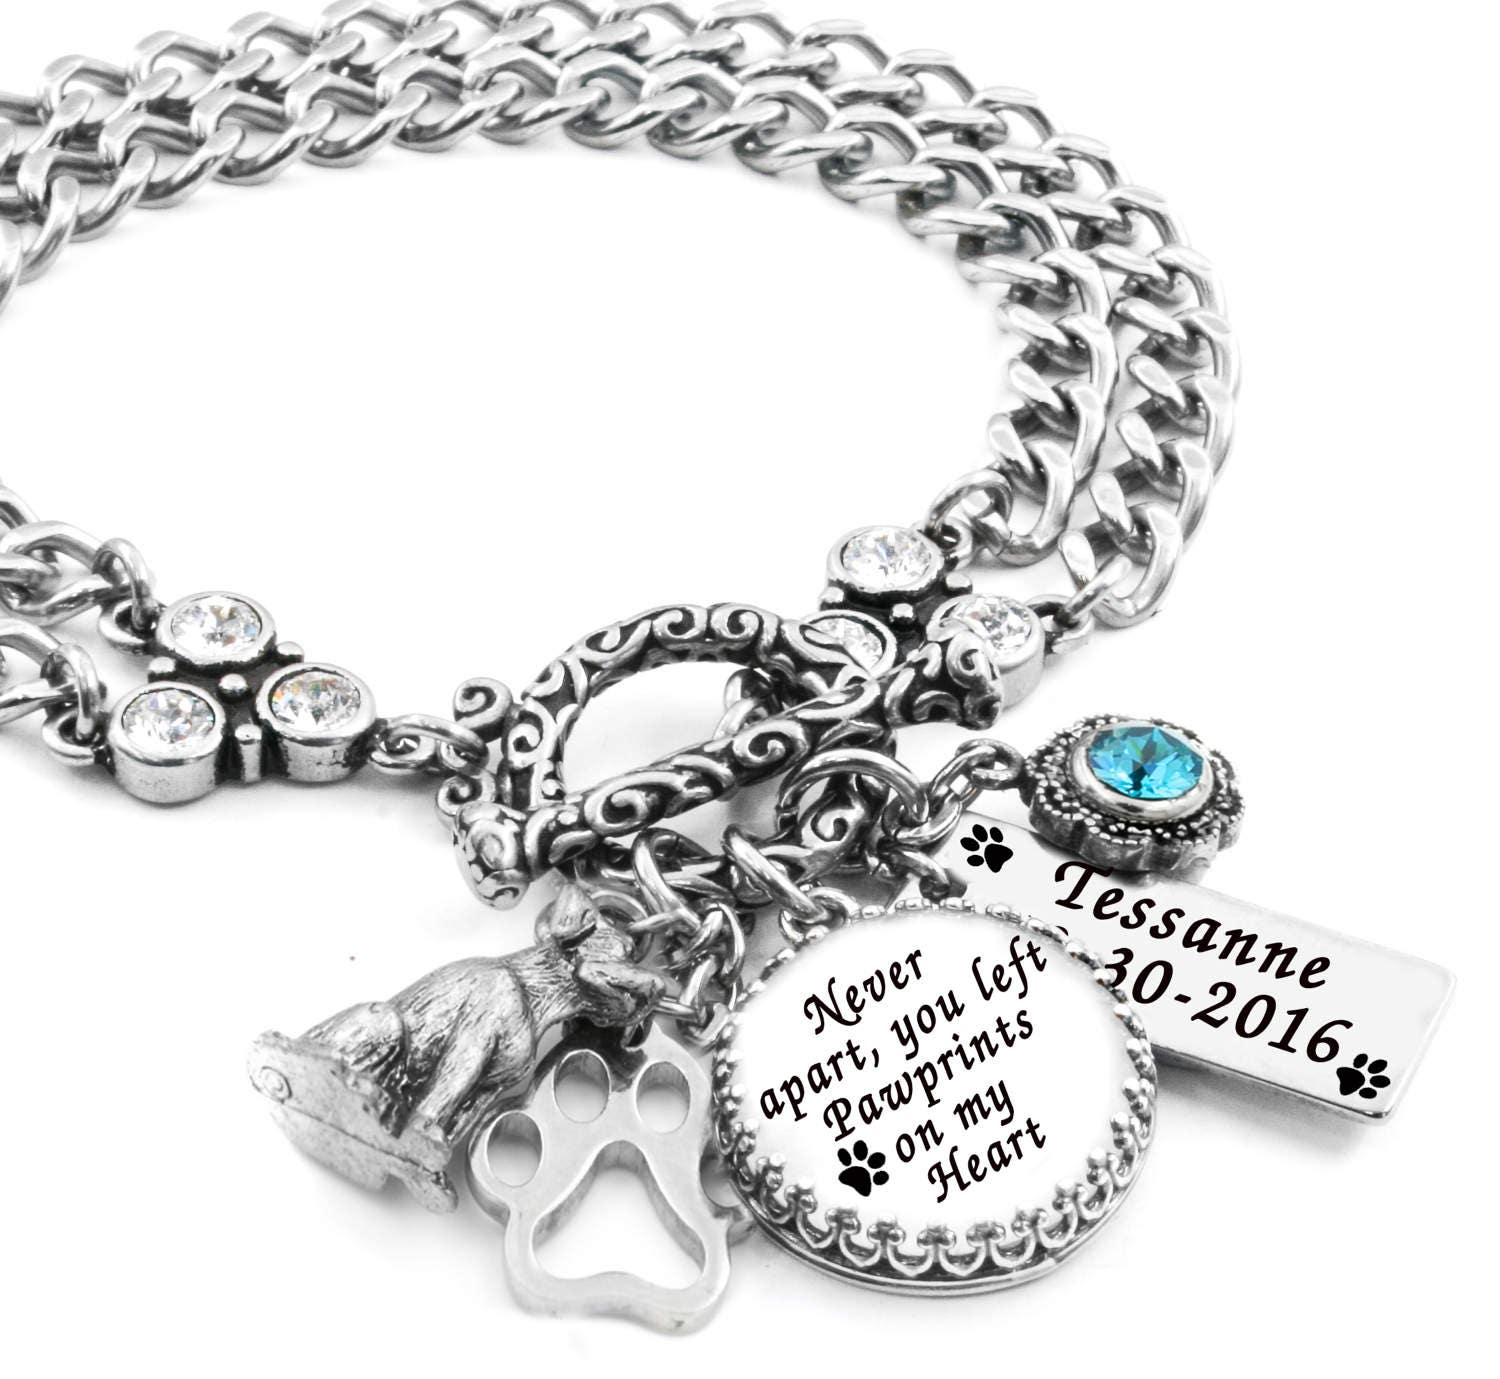 Personalized Bracelet Charms: Personalized Dog Bracelet Dog Jewelry Dog Charm Bracelet